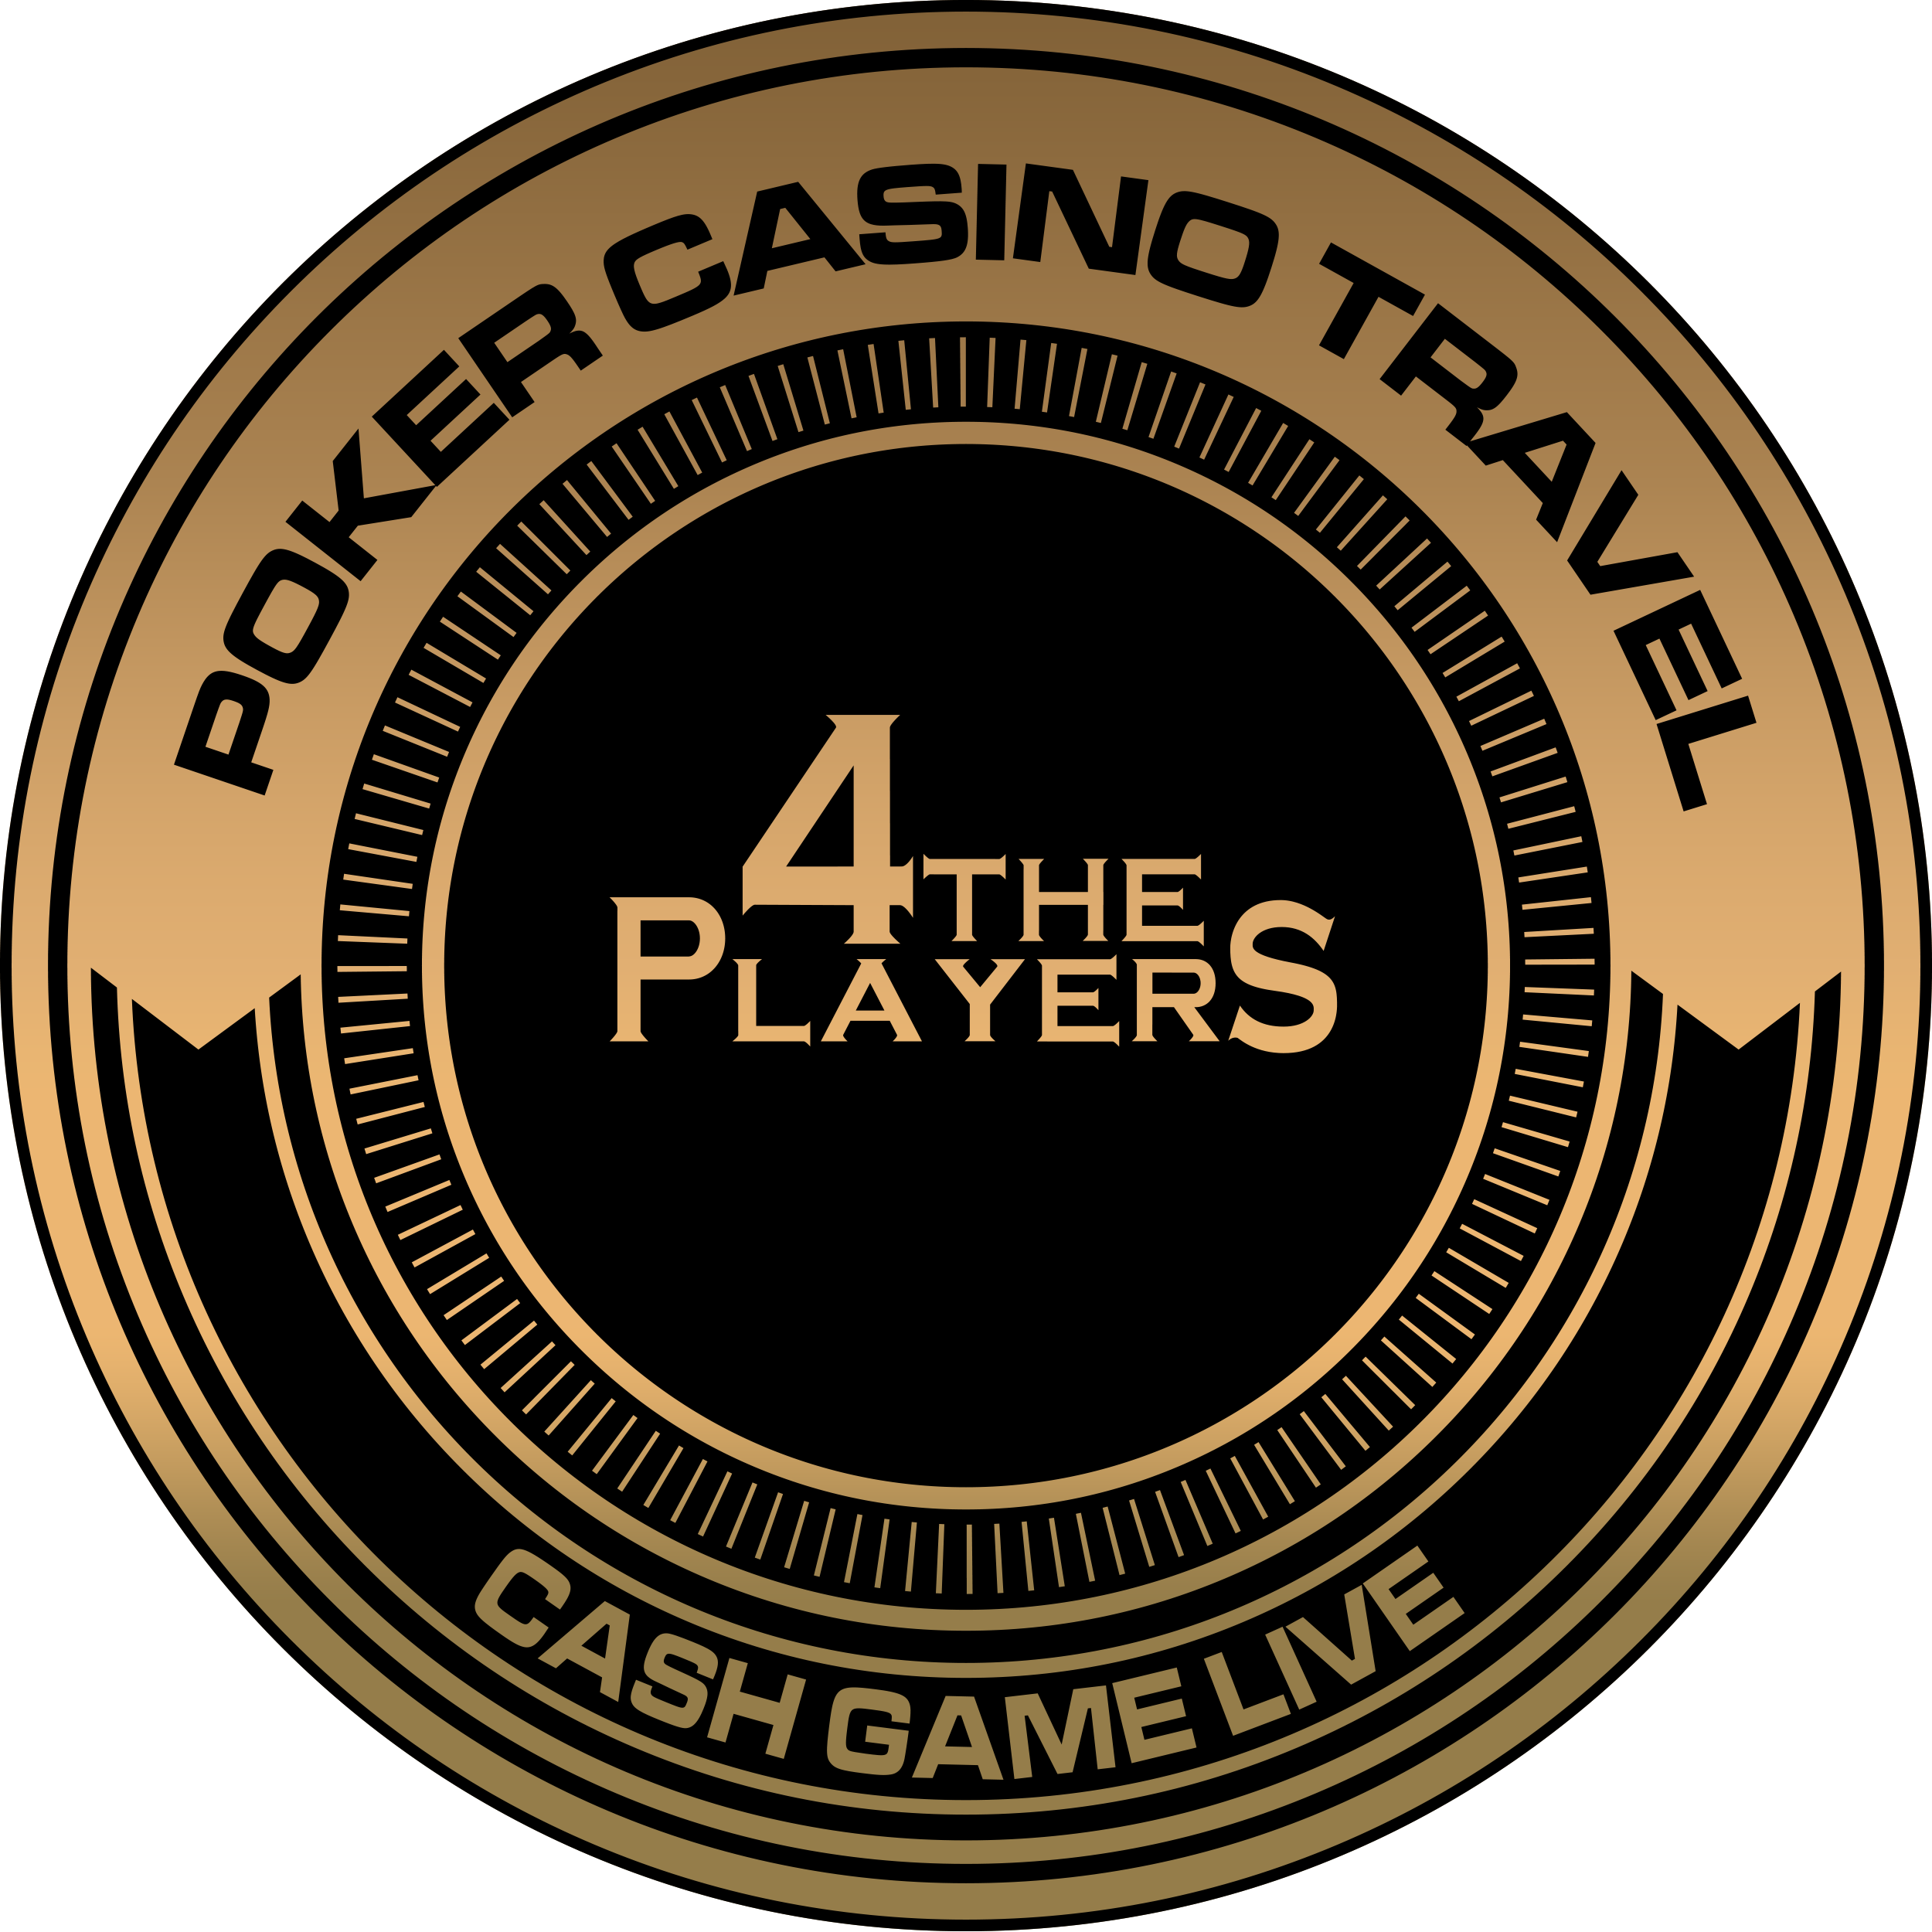 POKER CASINO TRAVEL